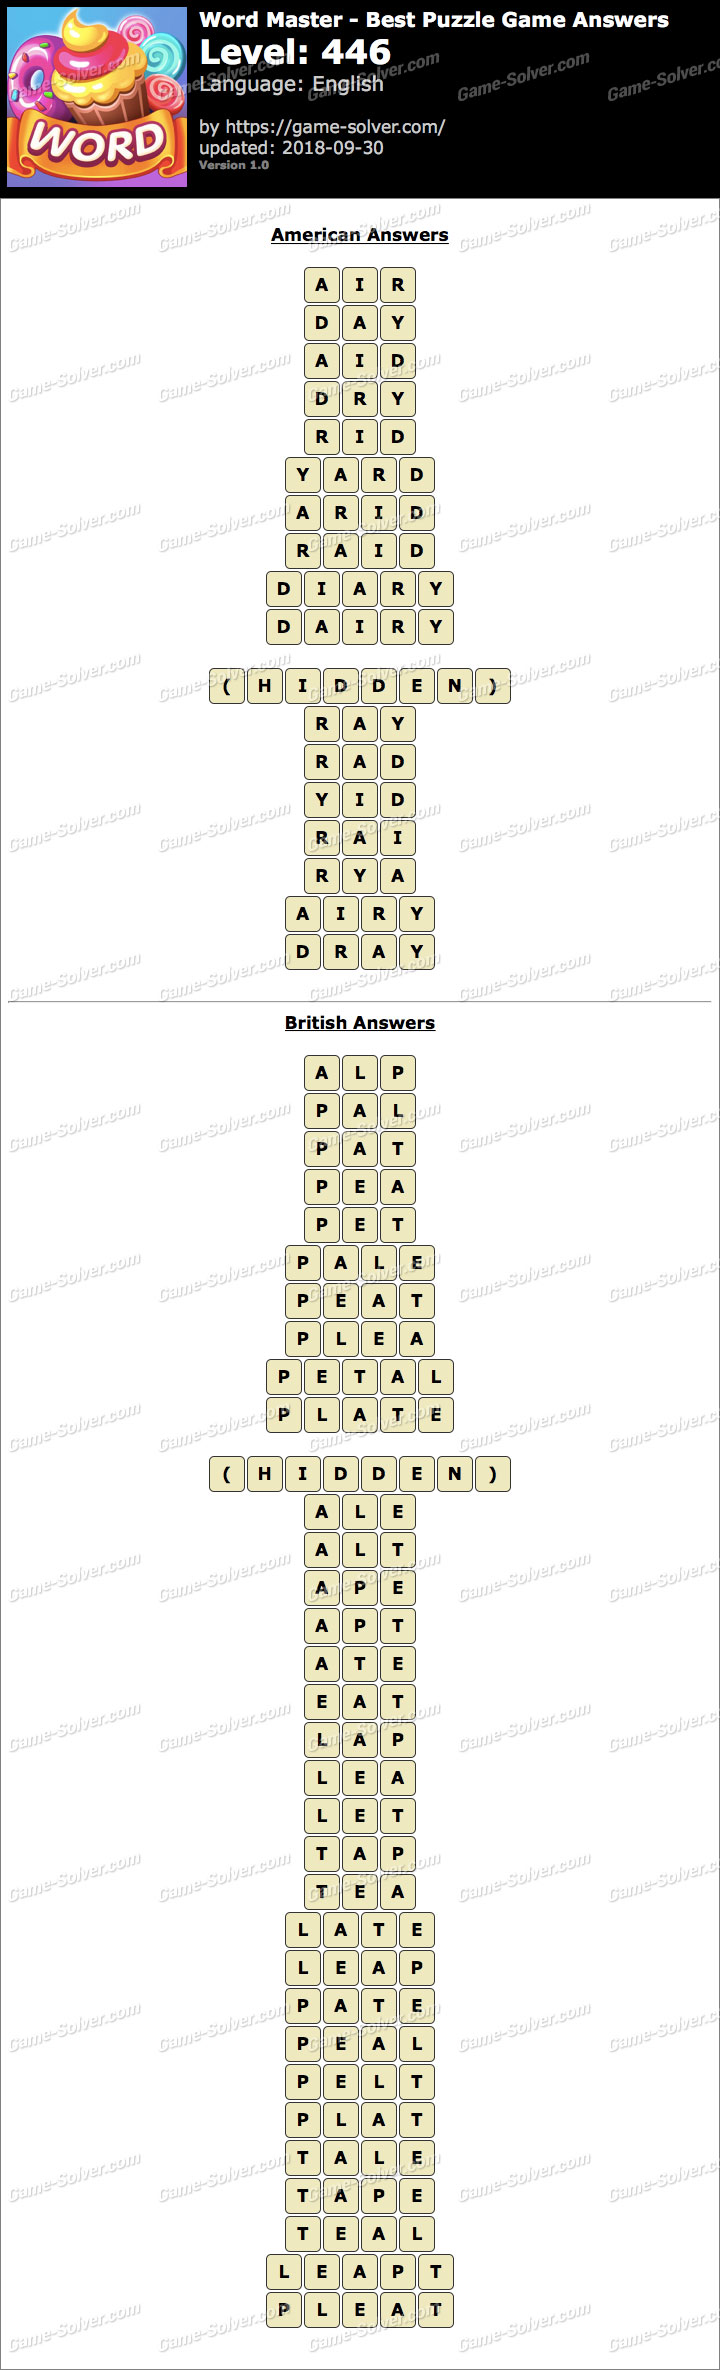 Word Master-Best Puzzle Game Level 446 Answers